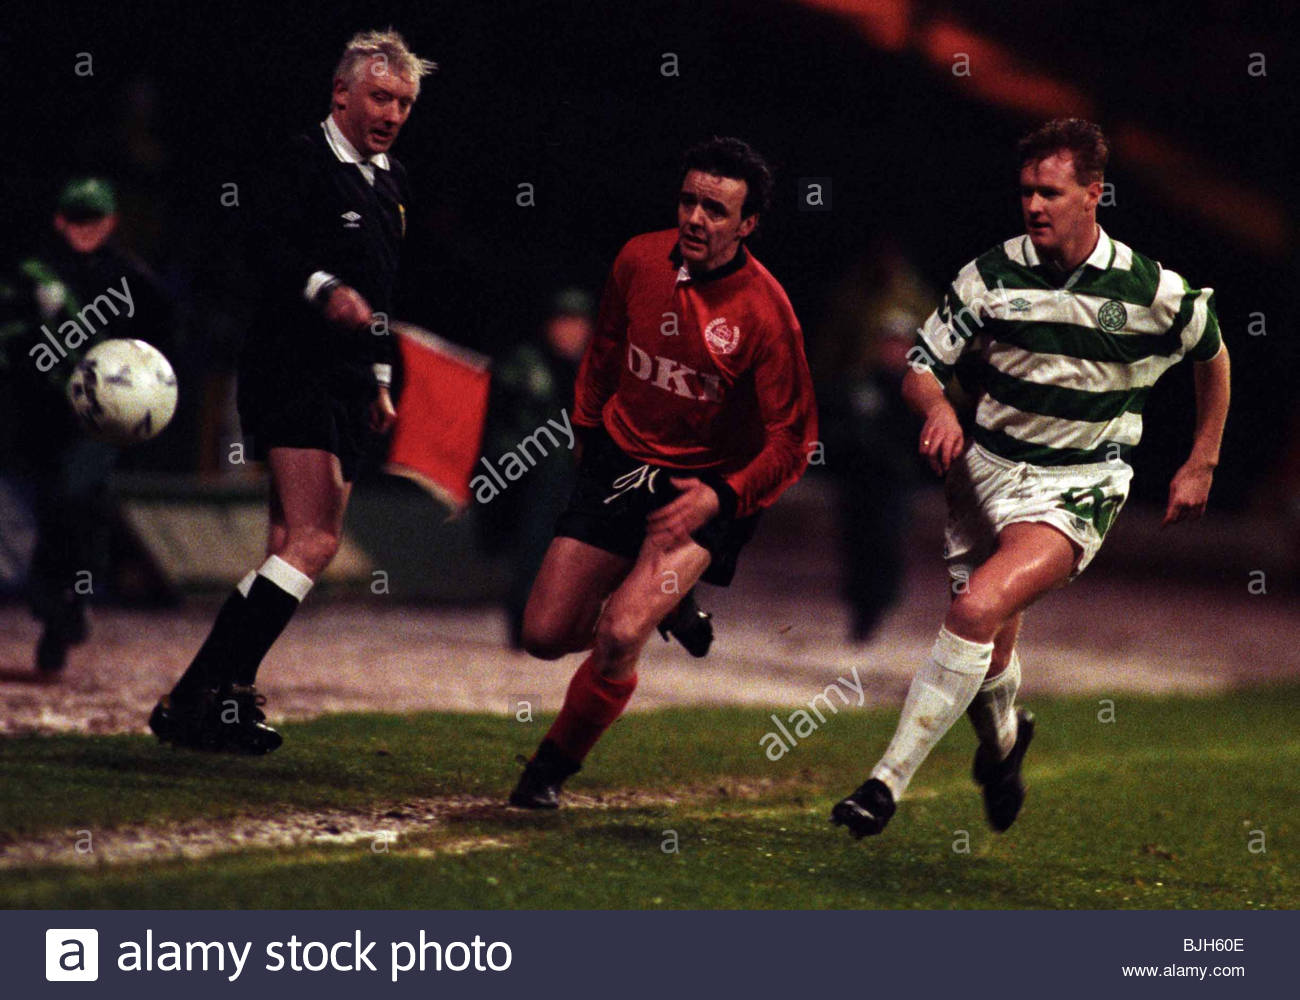 SEASON 1992/1993 CELTIC V CLYDE CELTIC PARK - GLASGOW Mike Galloway (right) chases the ball with Clyde's Keith - Stock Image